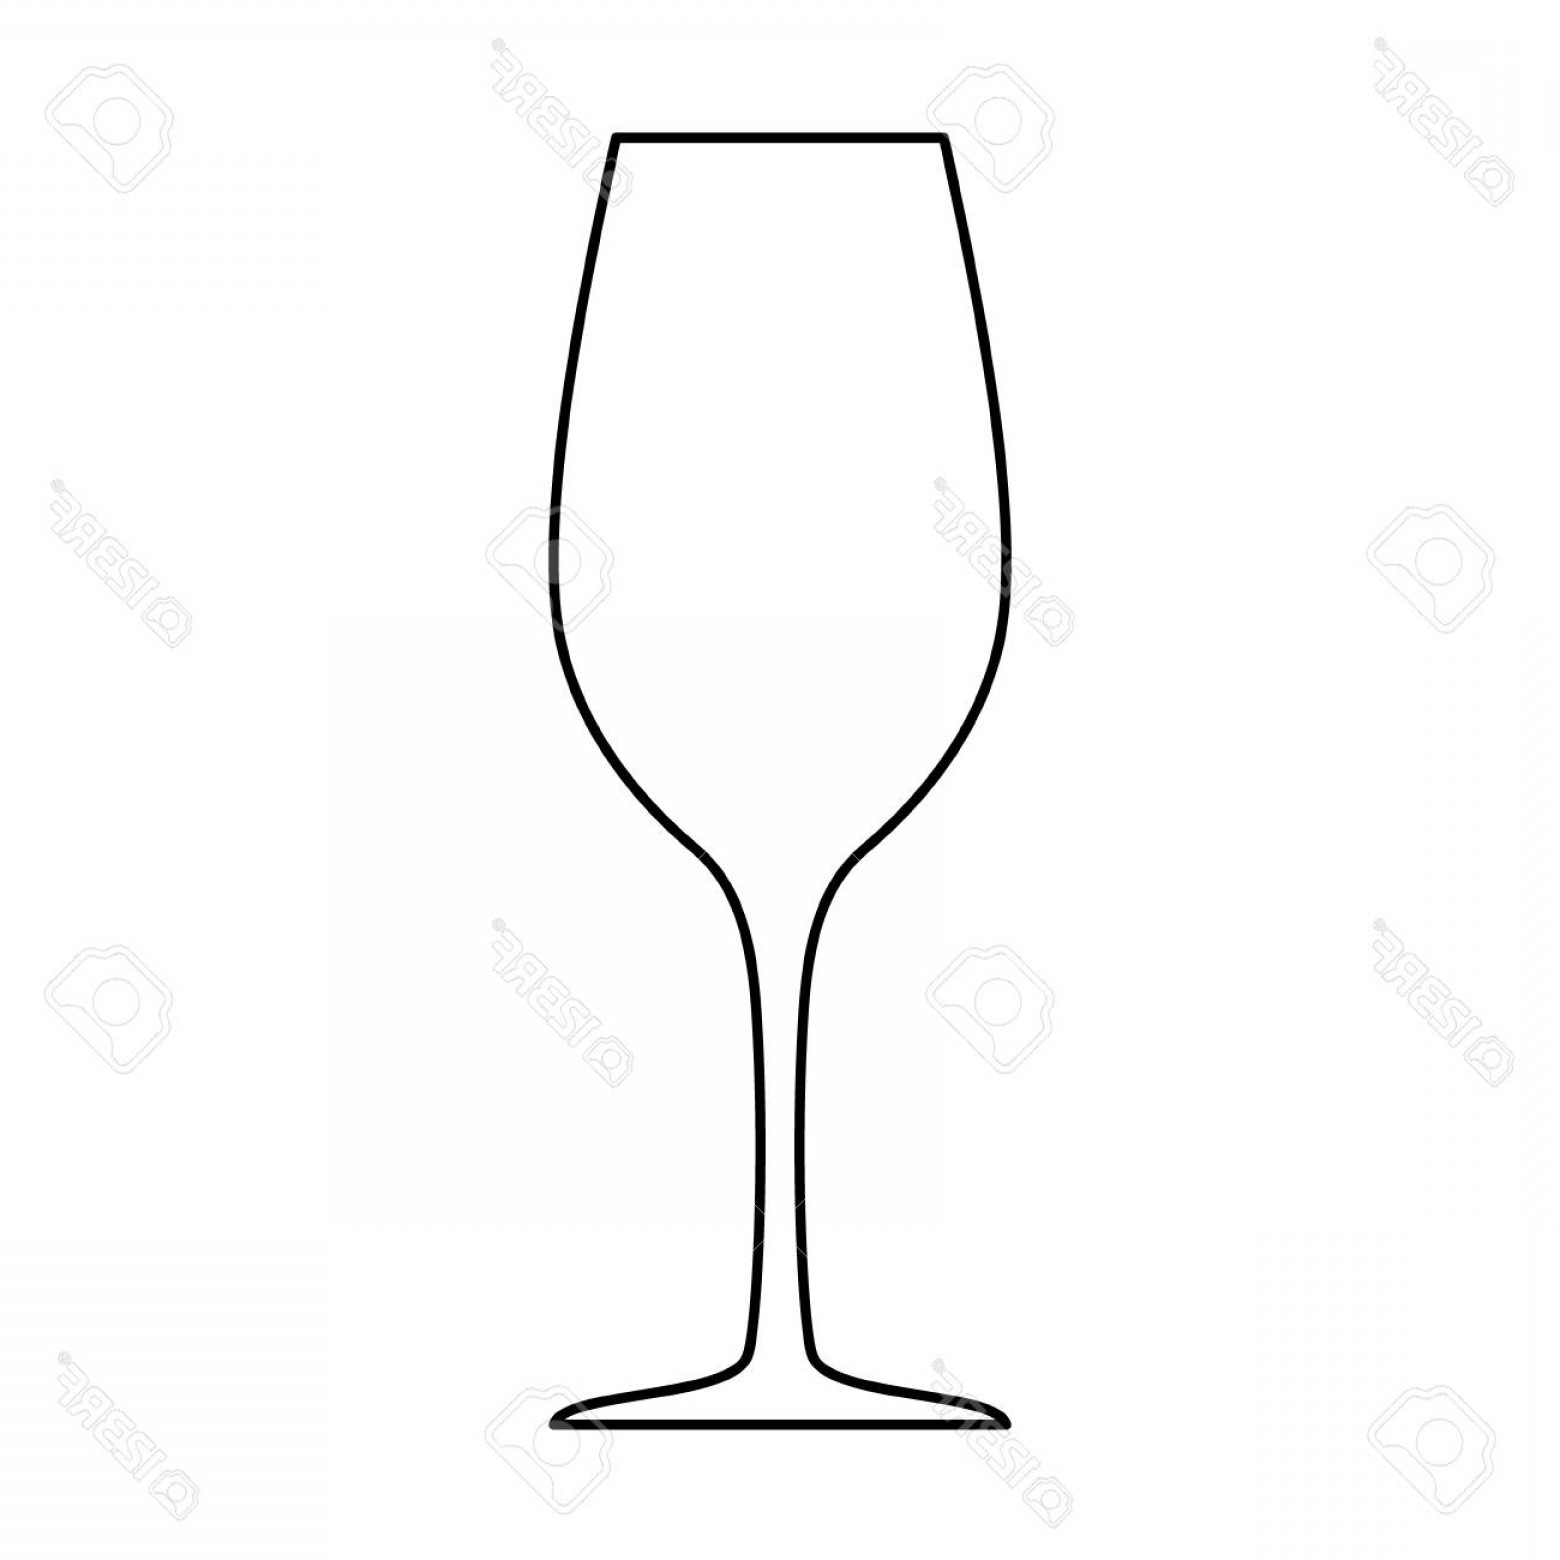 Single Wine Glass Silhouette Vector: Photostock Vector Wineglass Silhouette Isolated On White Background Vector Illustration